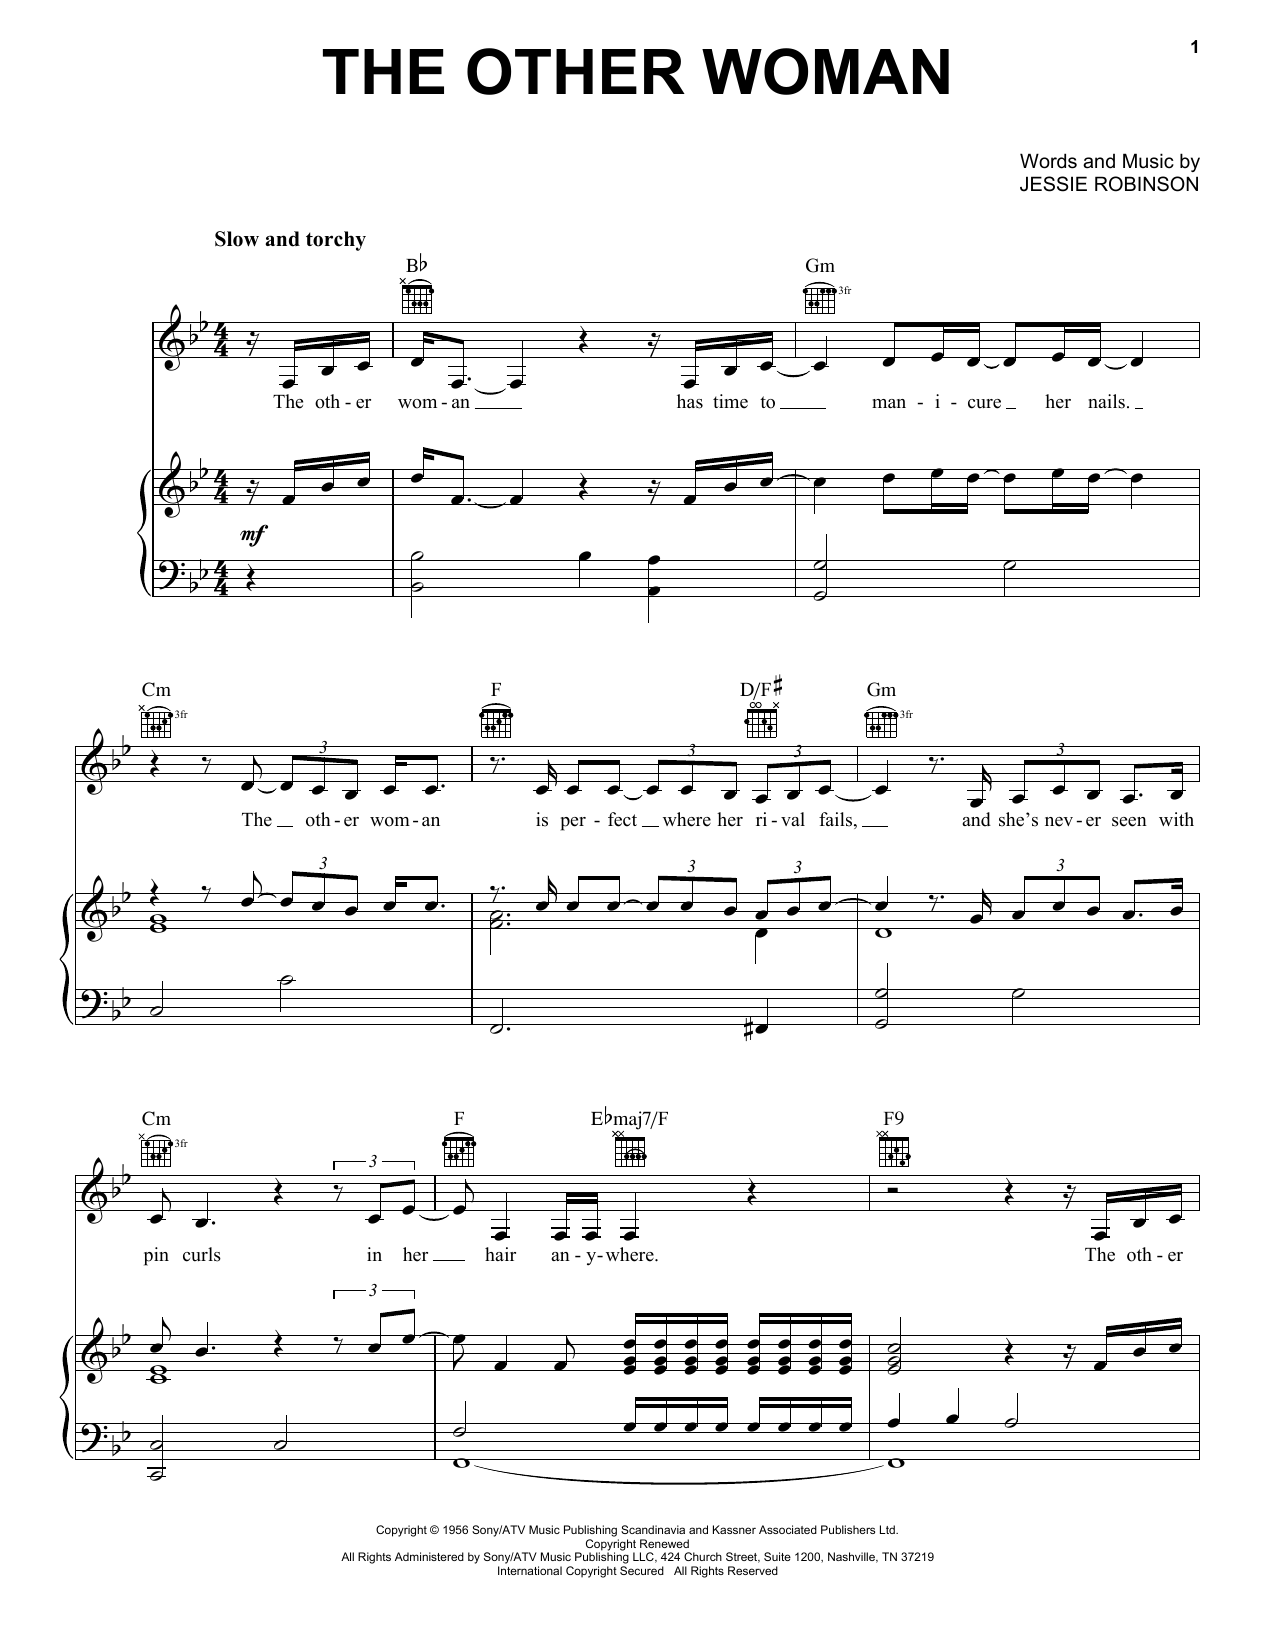 The Other Woman Sheet Music